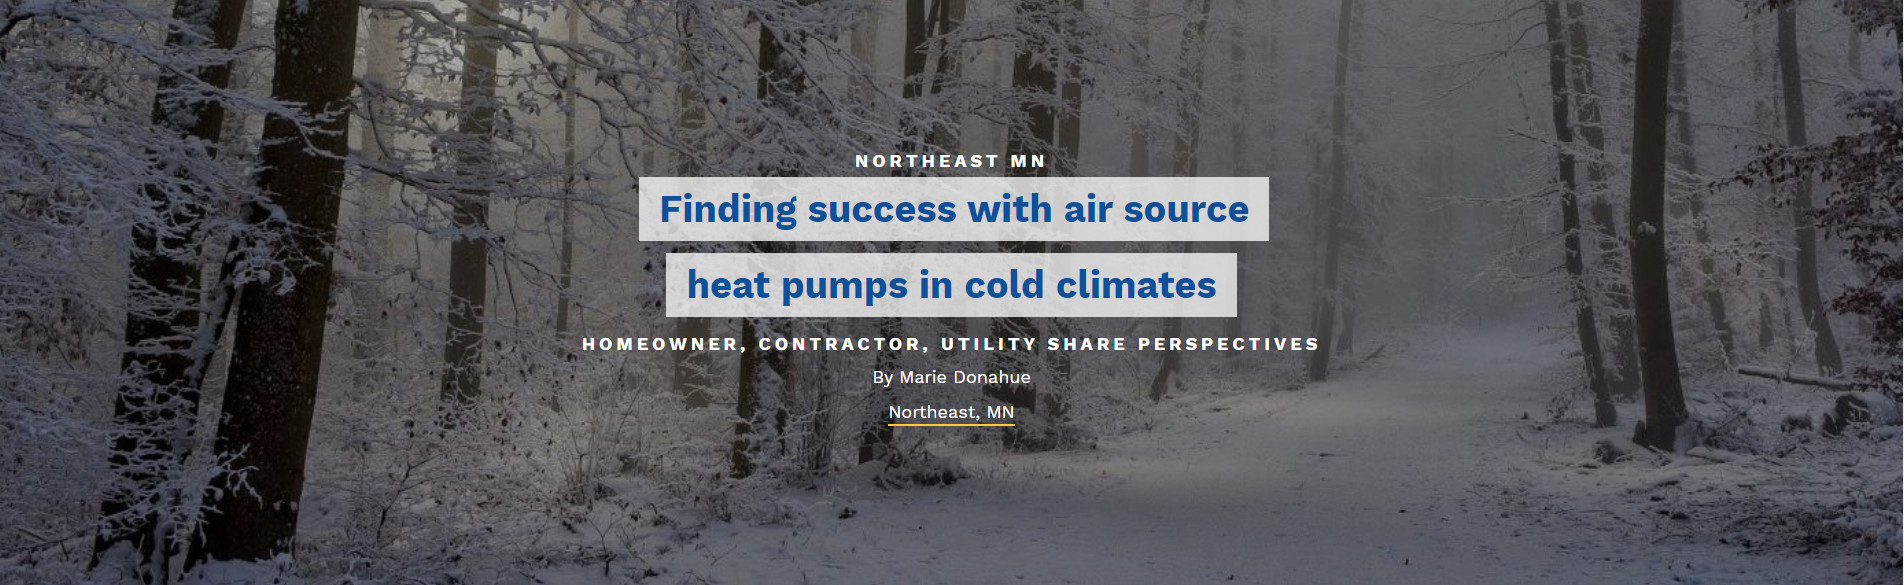 Finding success with air source heat pumps in cold climates